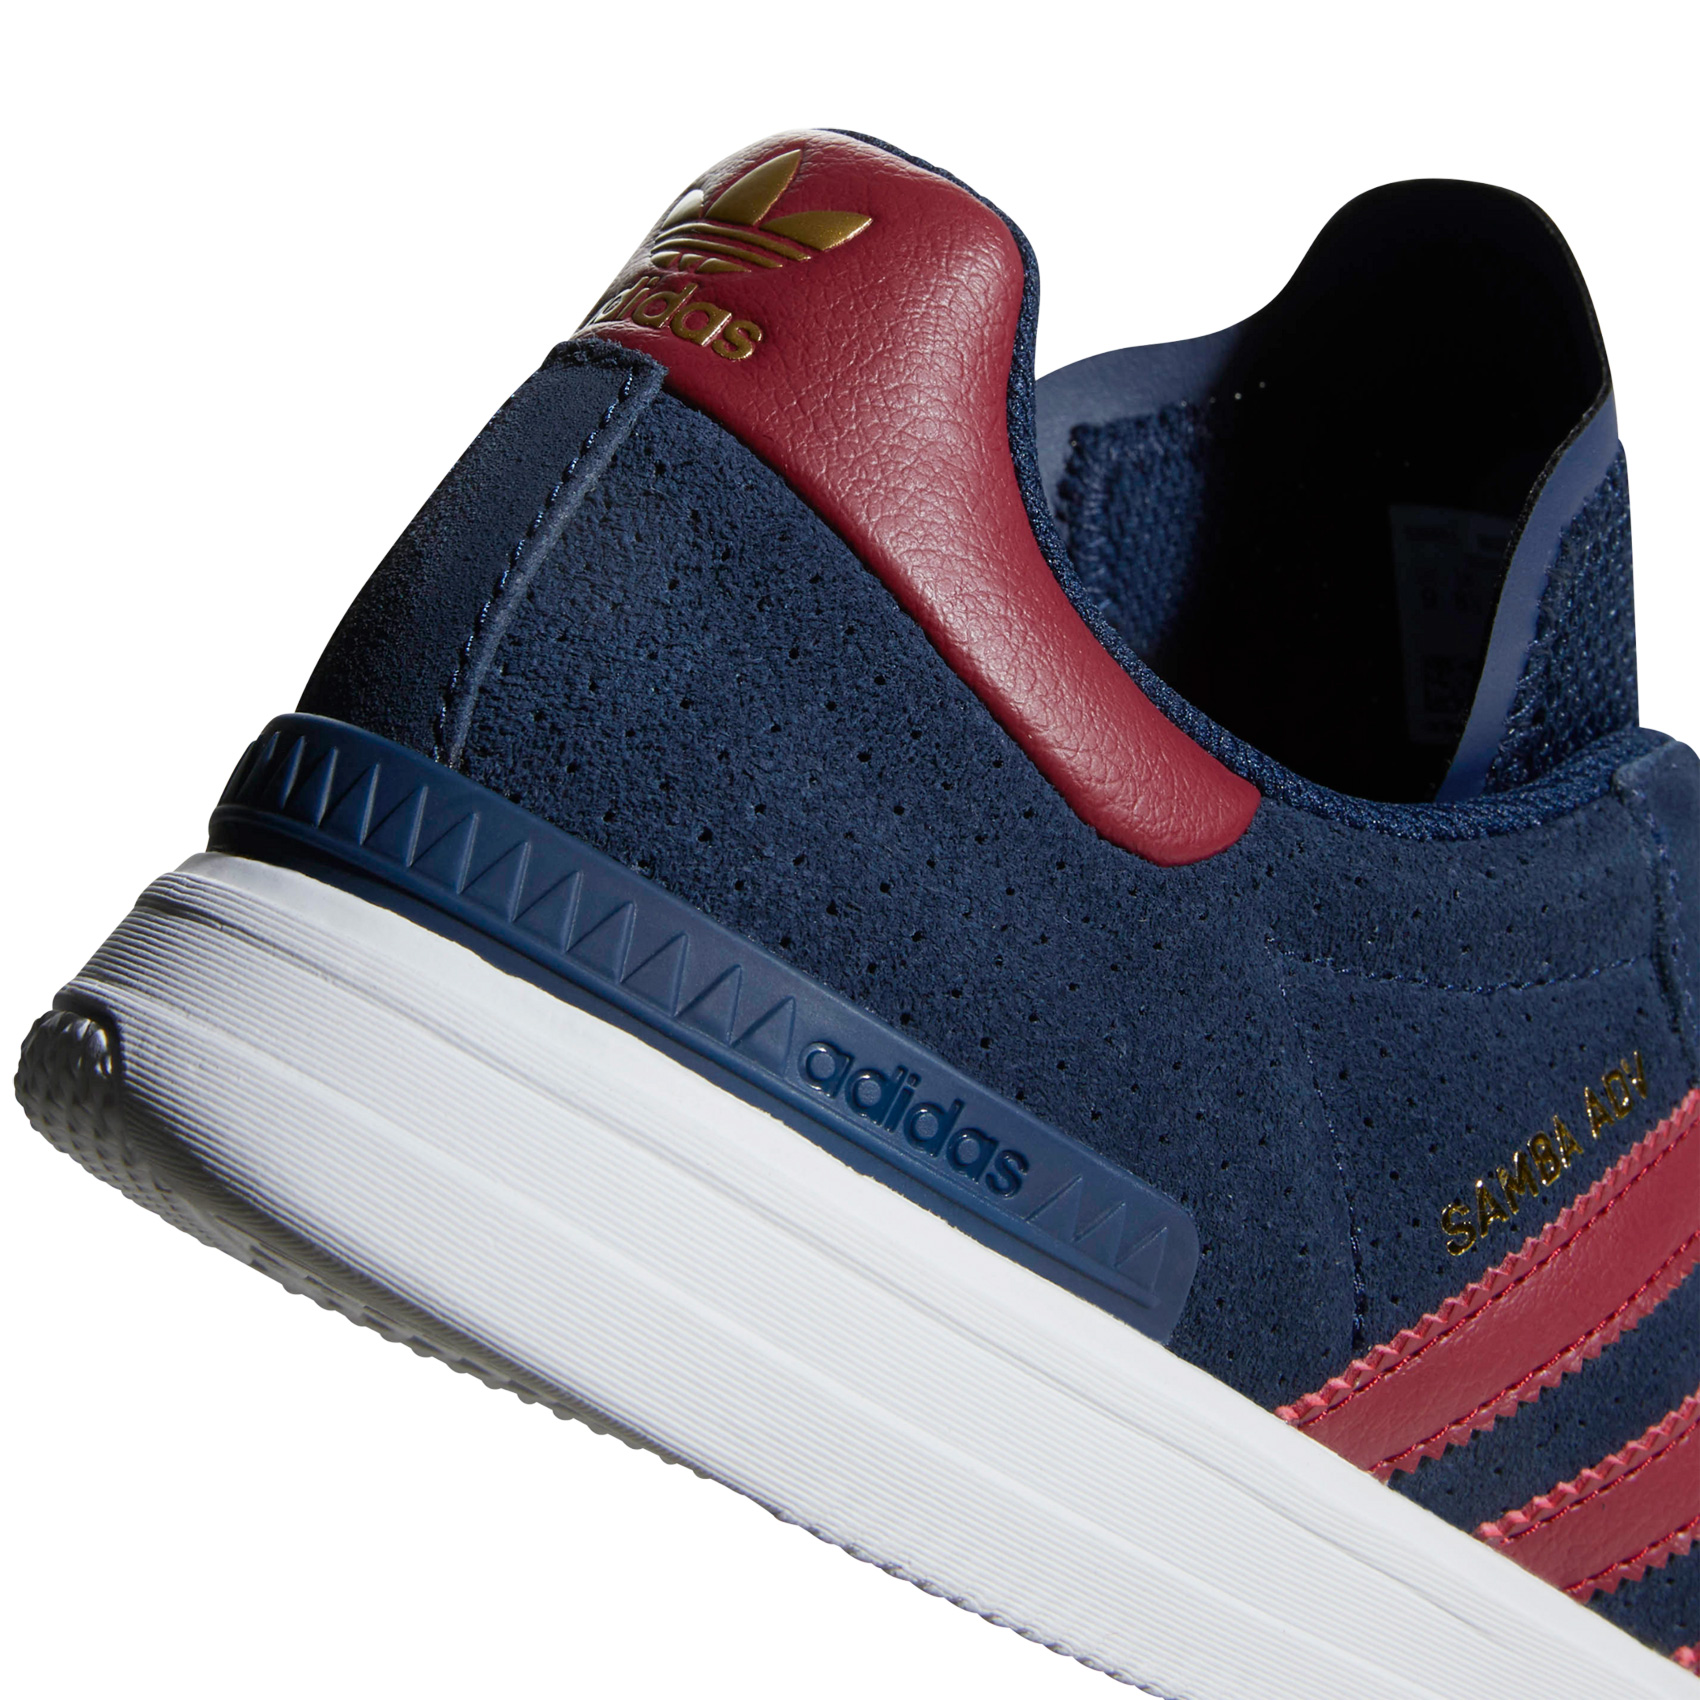 ... clearance sentinel adidas skateboarding samba adv skate shoes trainers  suede icon 23dc7 4da61 ... d077cd9c0